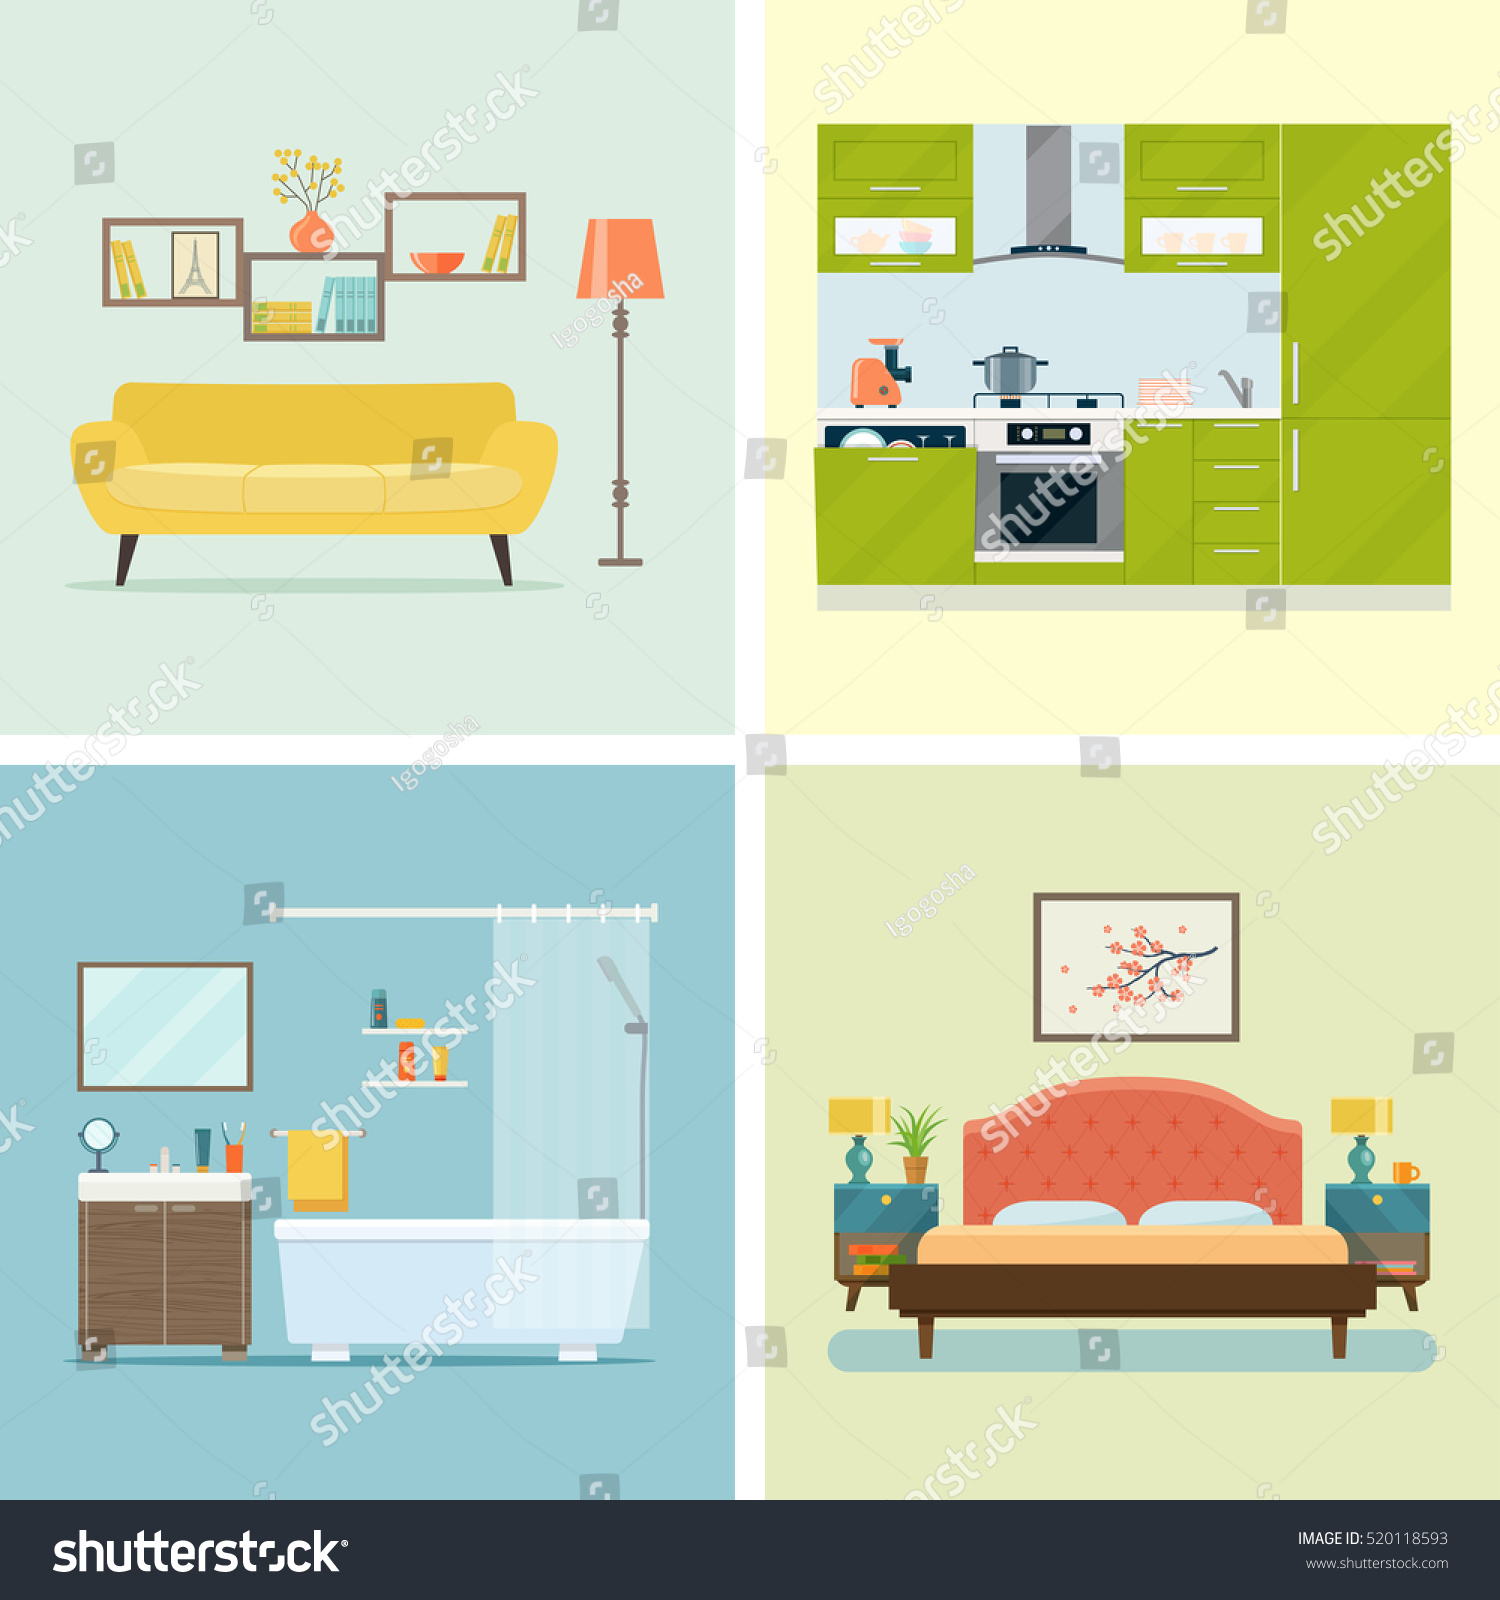 Cartoon Kitchen Furniture: Set Interior Design Room Living Room Stock Vector